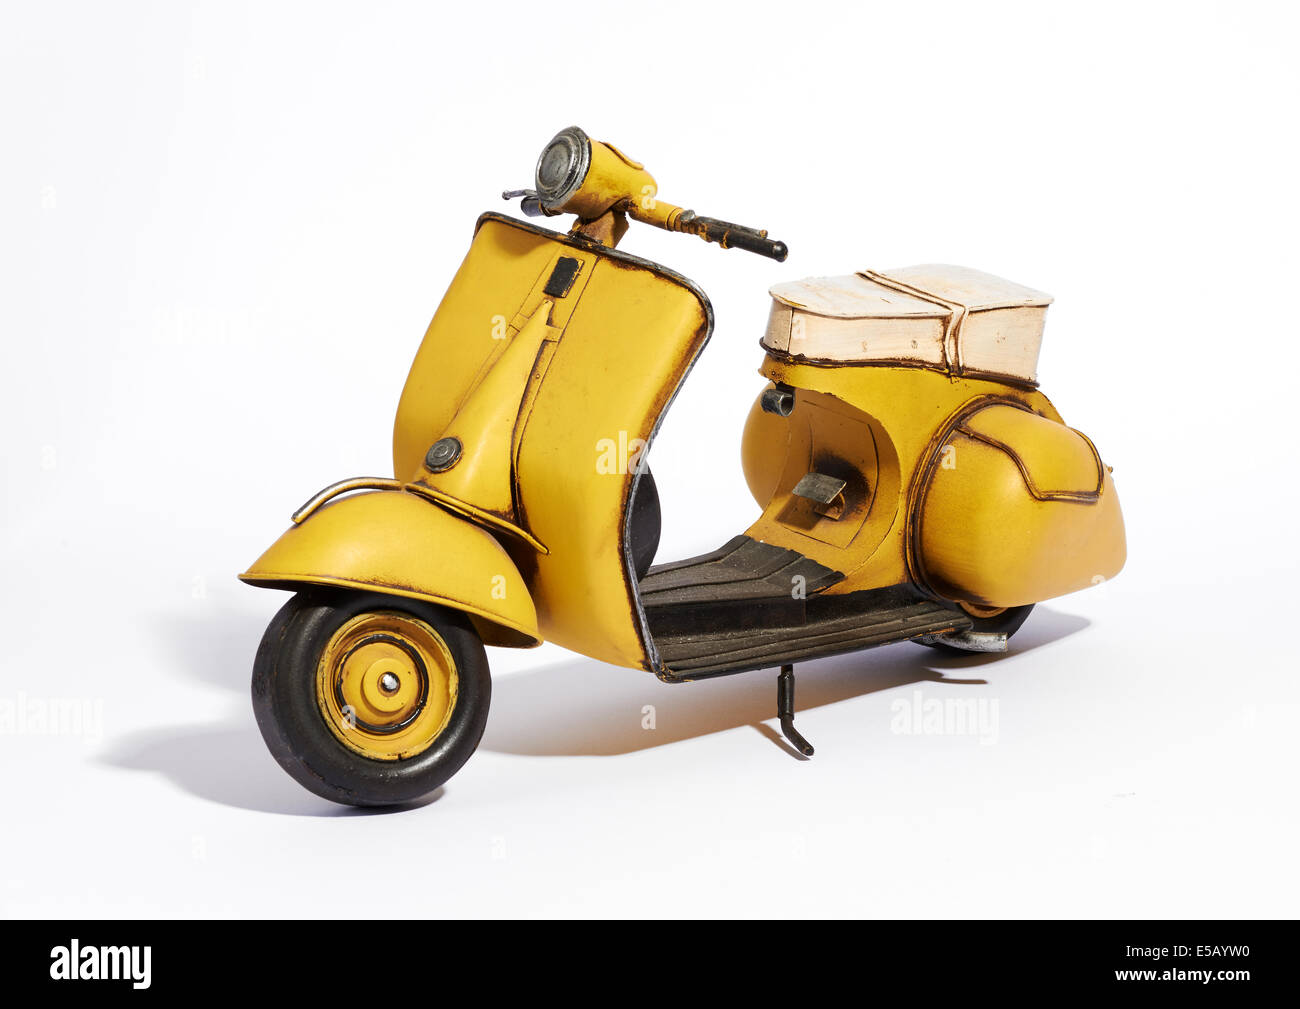 Old yellow motor scooter - Stock Image